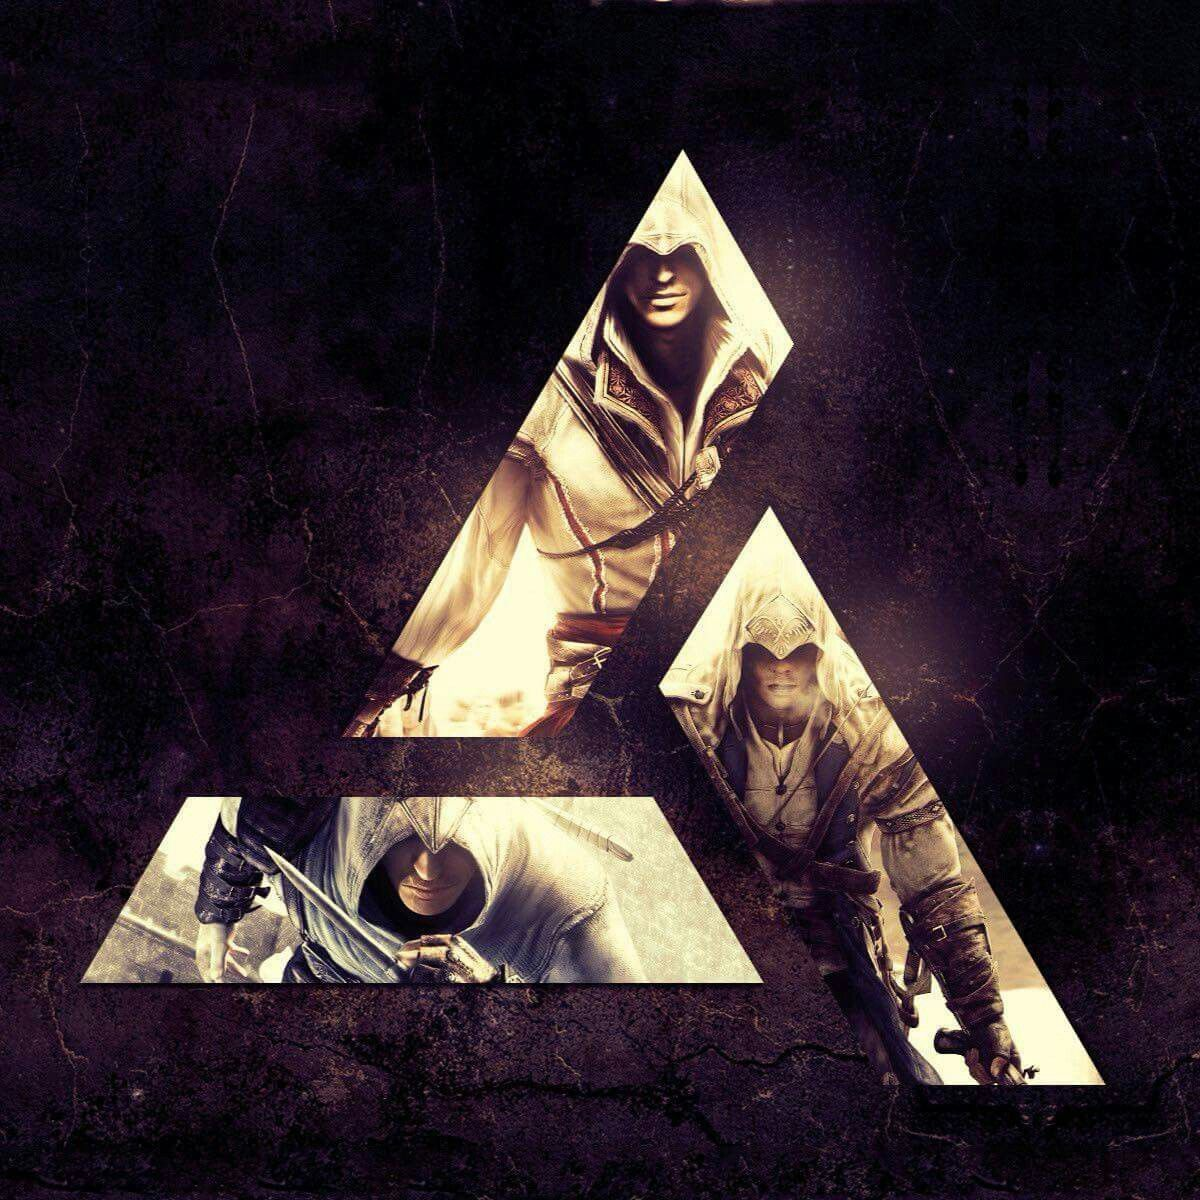 Pin De Leo Surya Kumar Em Assassin S Creed